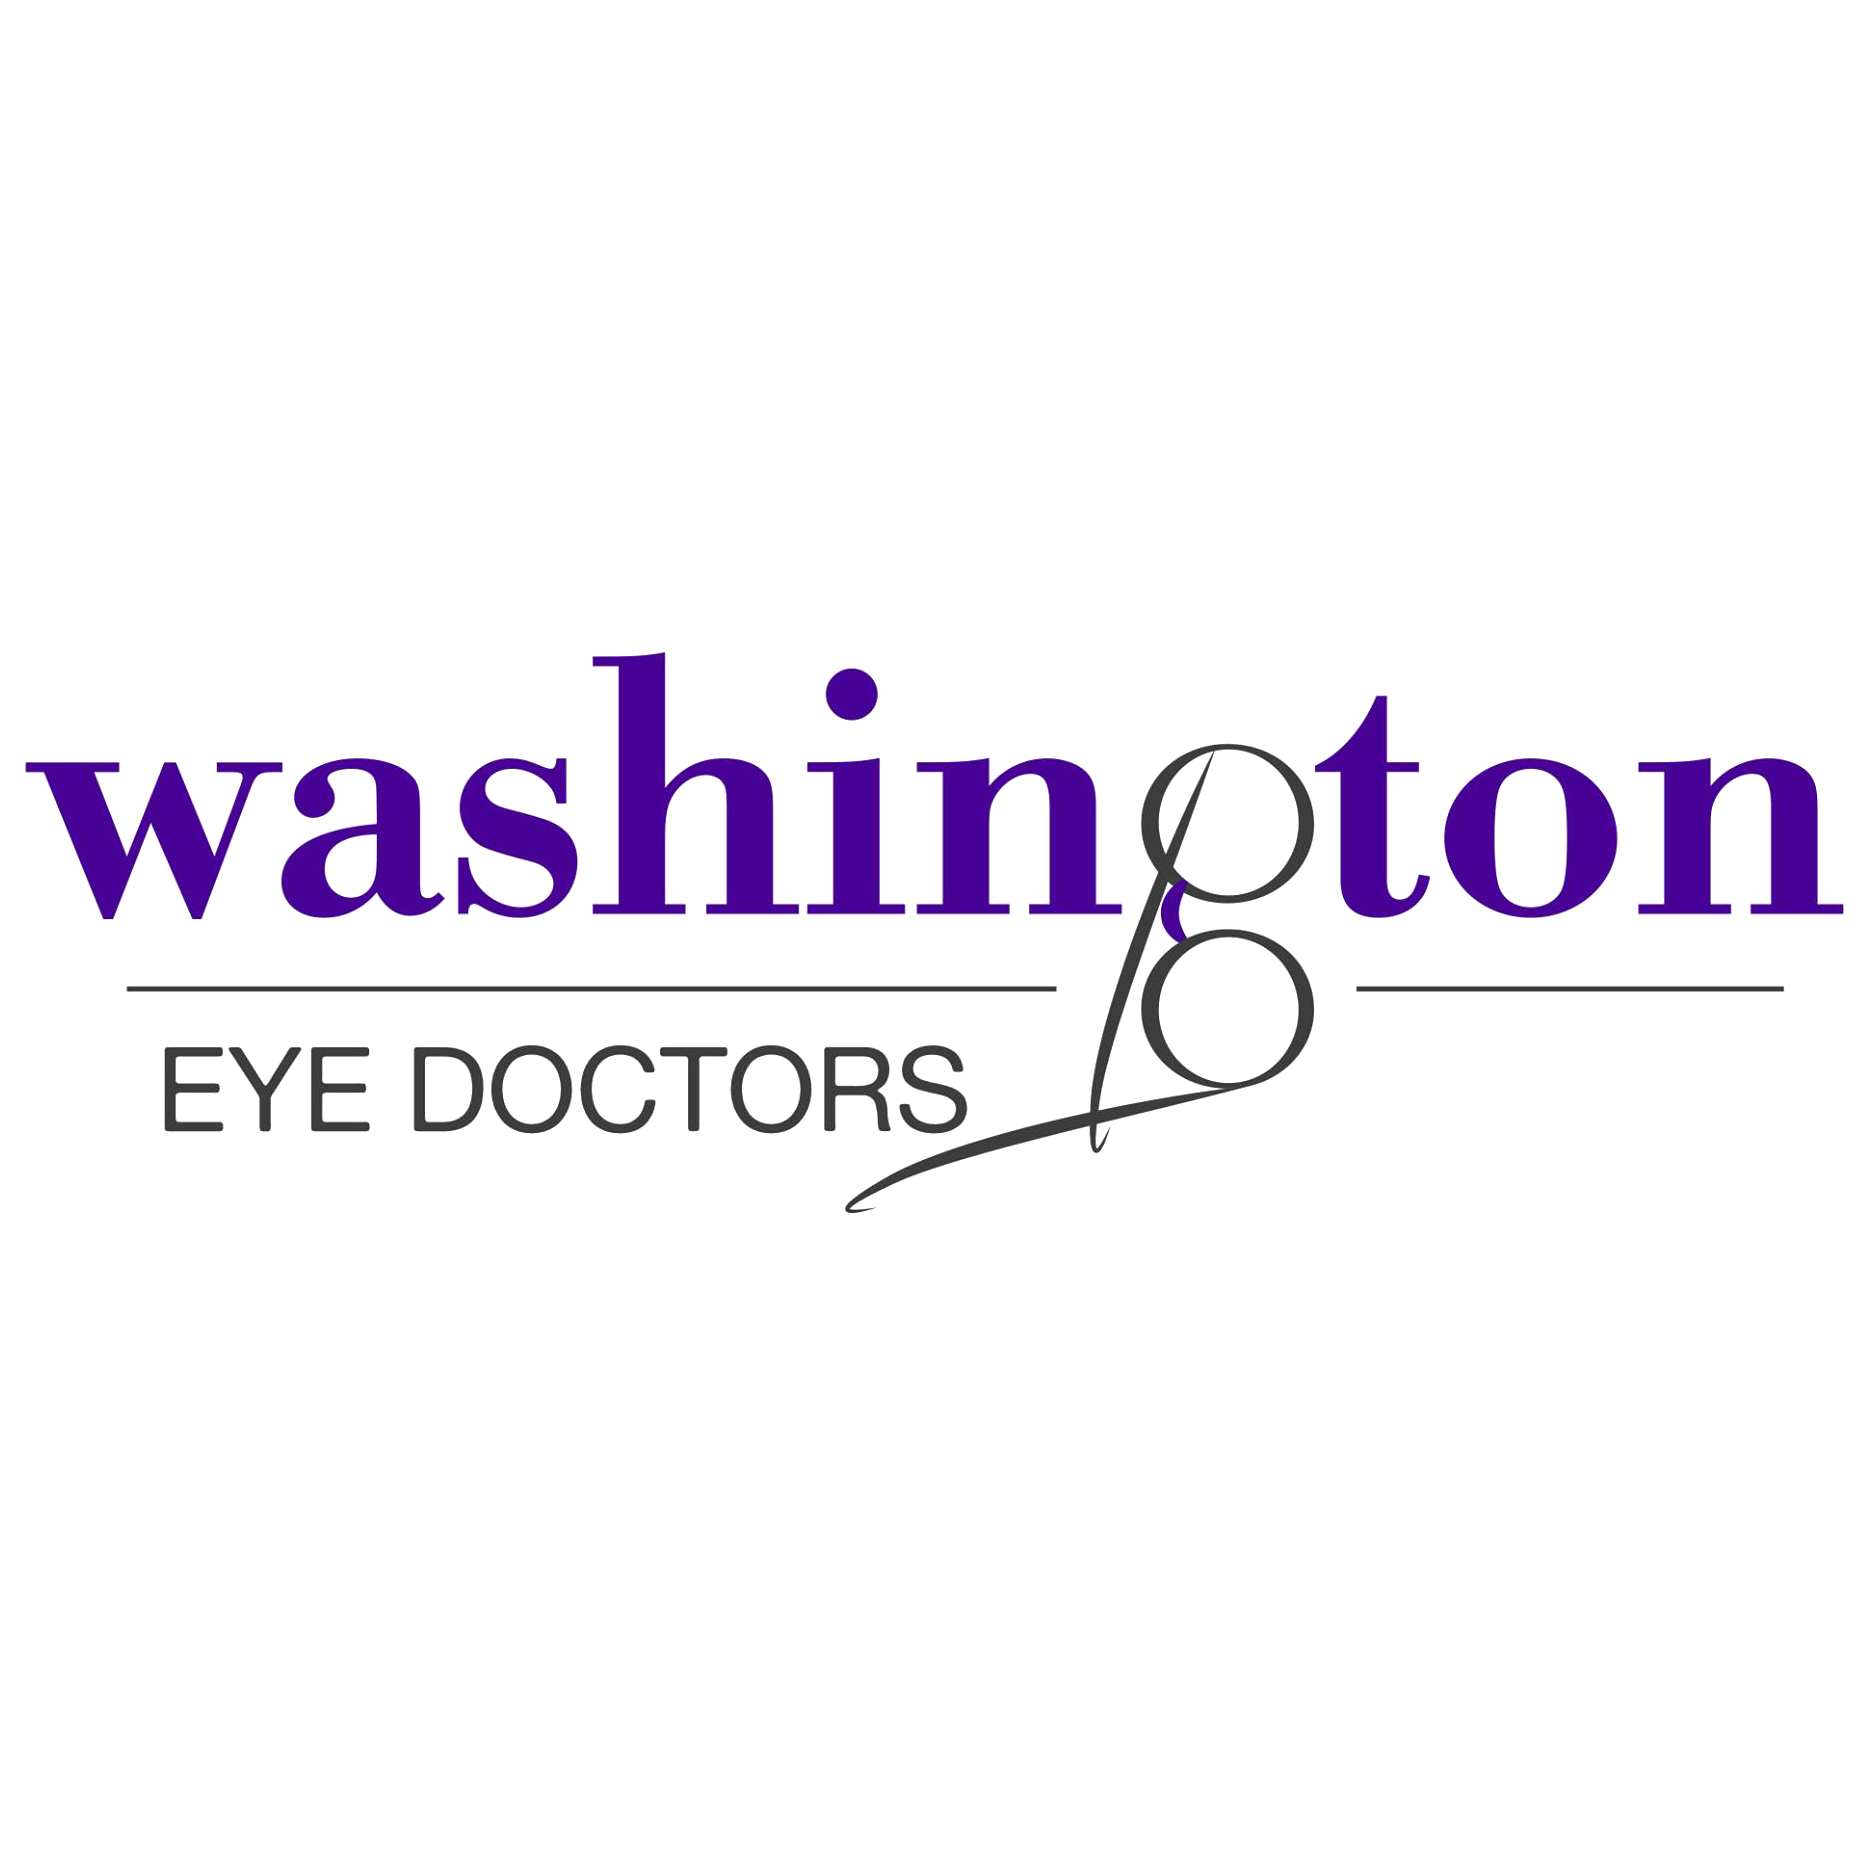 Washington Eye Doctors Coupons Near Me In Washington. College Resources For Students. 50 Year Term Life Insurance Allergy Or Cold. Lincoln Ne Car Dealers My Bathtub Won T Drain. Wintac Software Reviews Sony Computer Service. Two Year Colleges In Chicago. Landscaping Estimating Software. Web Design Templates Wordpress. Washington University In St Louis Law School Ranking